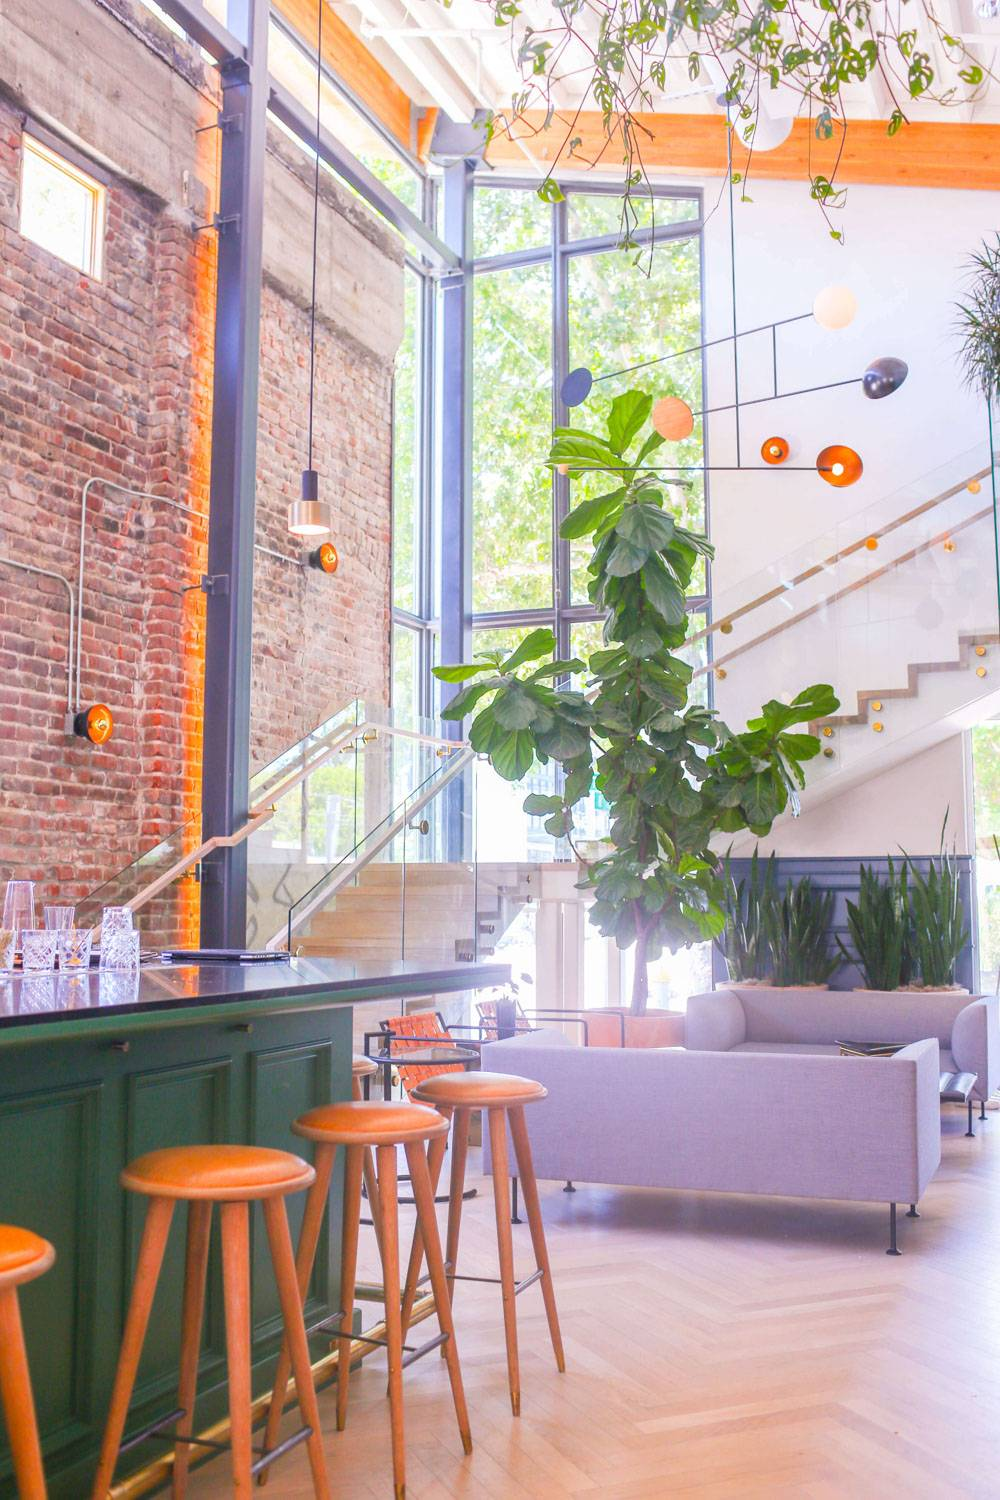 Looking for the most instagrammable places in Sacramento? Well, look no further- we'll pulled together the list of all the cute and instagrammable coffee shops, and wall art, and cute ice cream parlours so you can snap away!